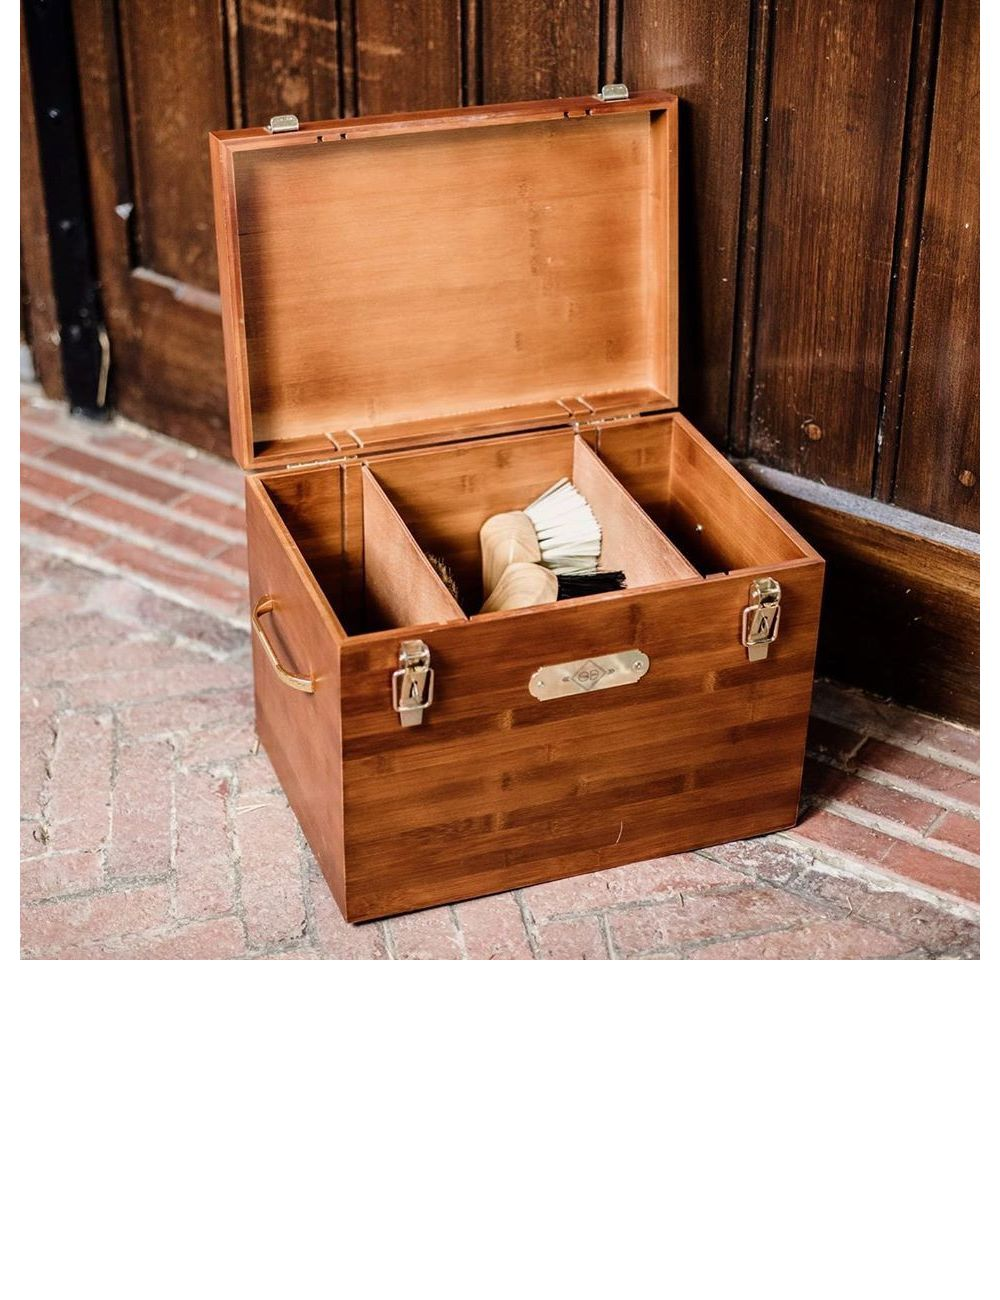 Grooming Deluxe Putzkoffer Tack Box - 1